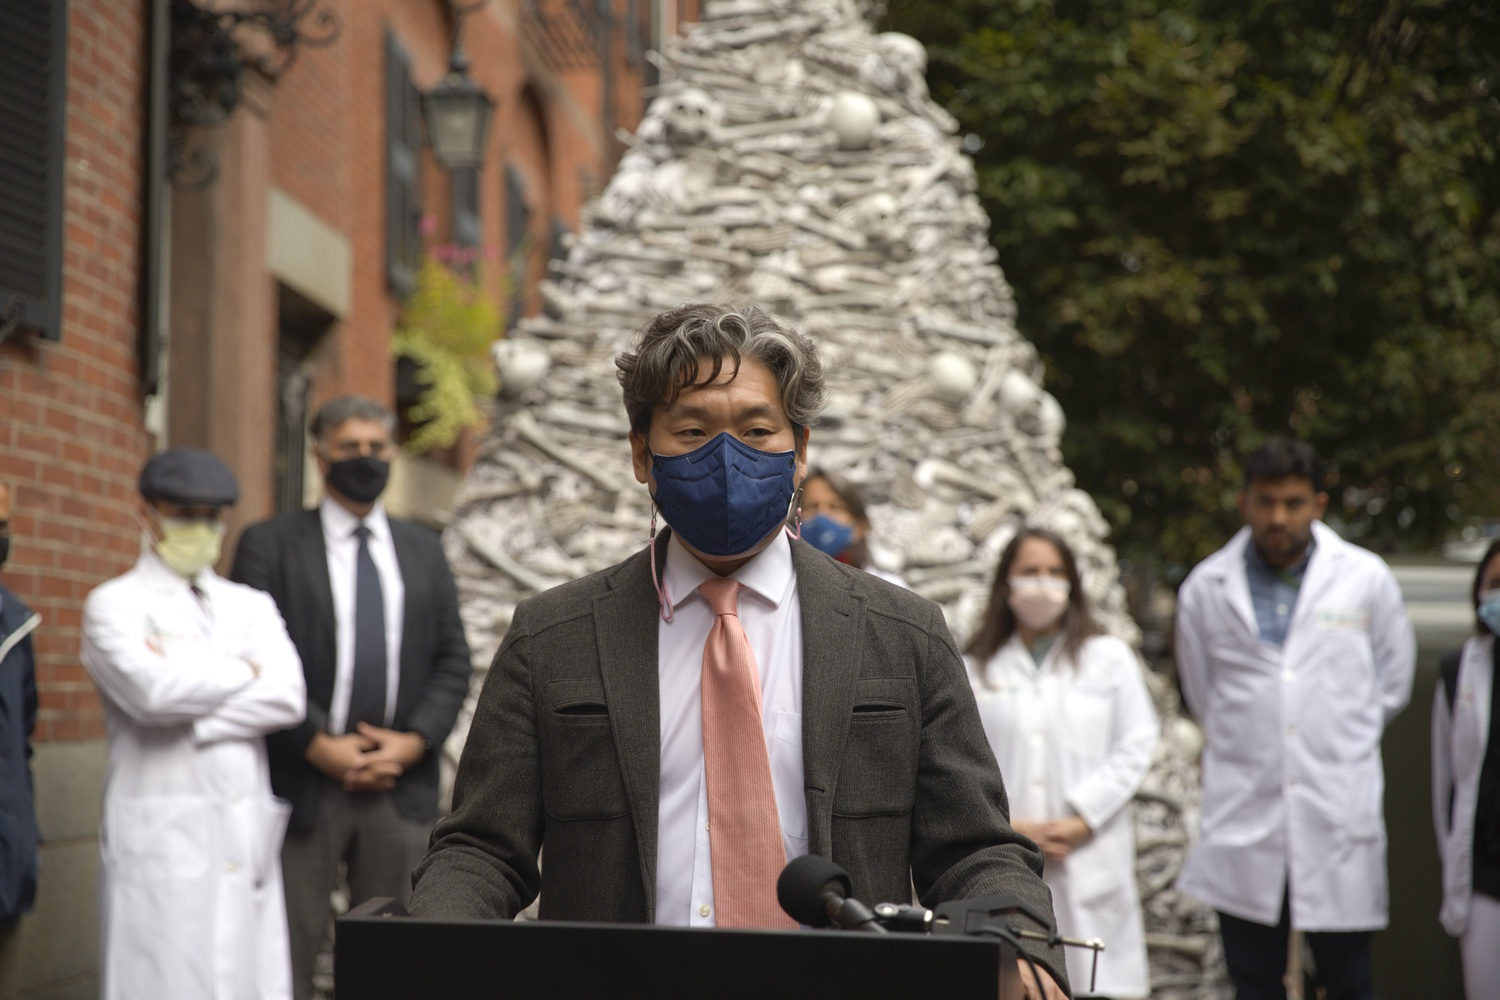 KJ Seung, an assistant professor at Harvard Medical School, speaks at a Wednesday rally during which a group of HMS-affiliated doctors called for global vaccine equity outside the home of Moderna's CEO.